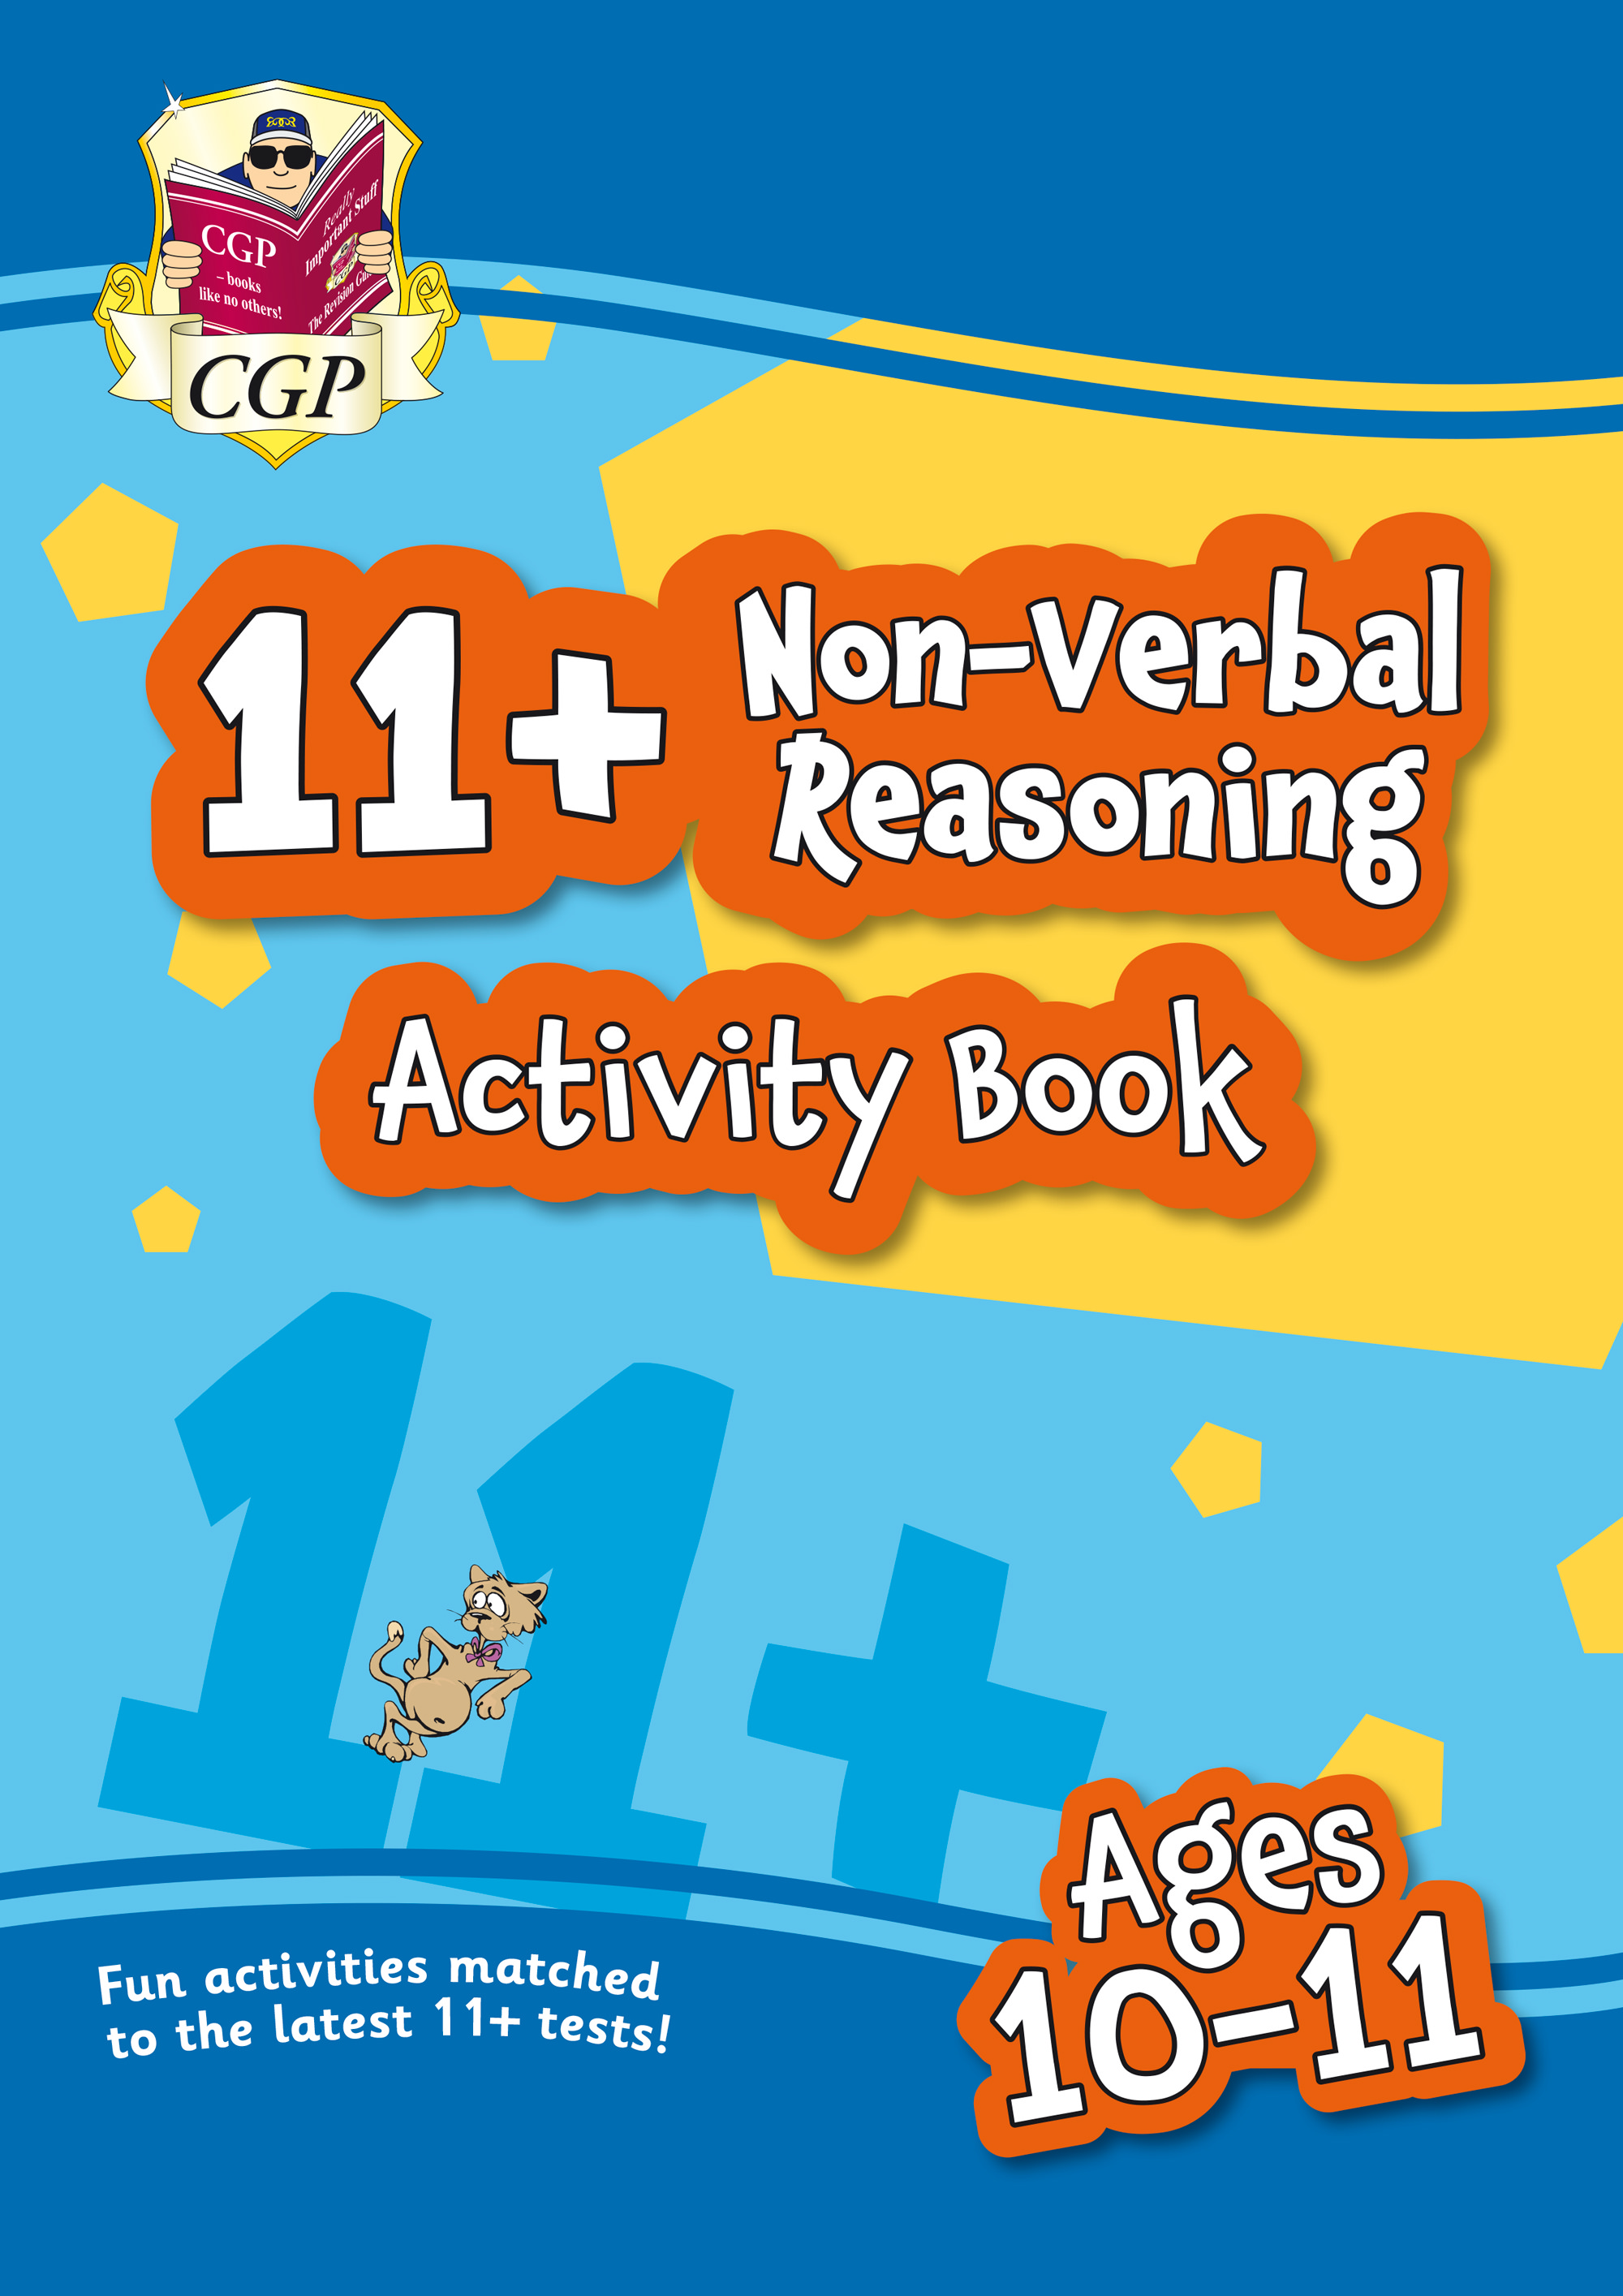 NF6QE1 - New 11+ Activity Book: Non-Verbal Reasoning - Ages 10-11